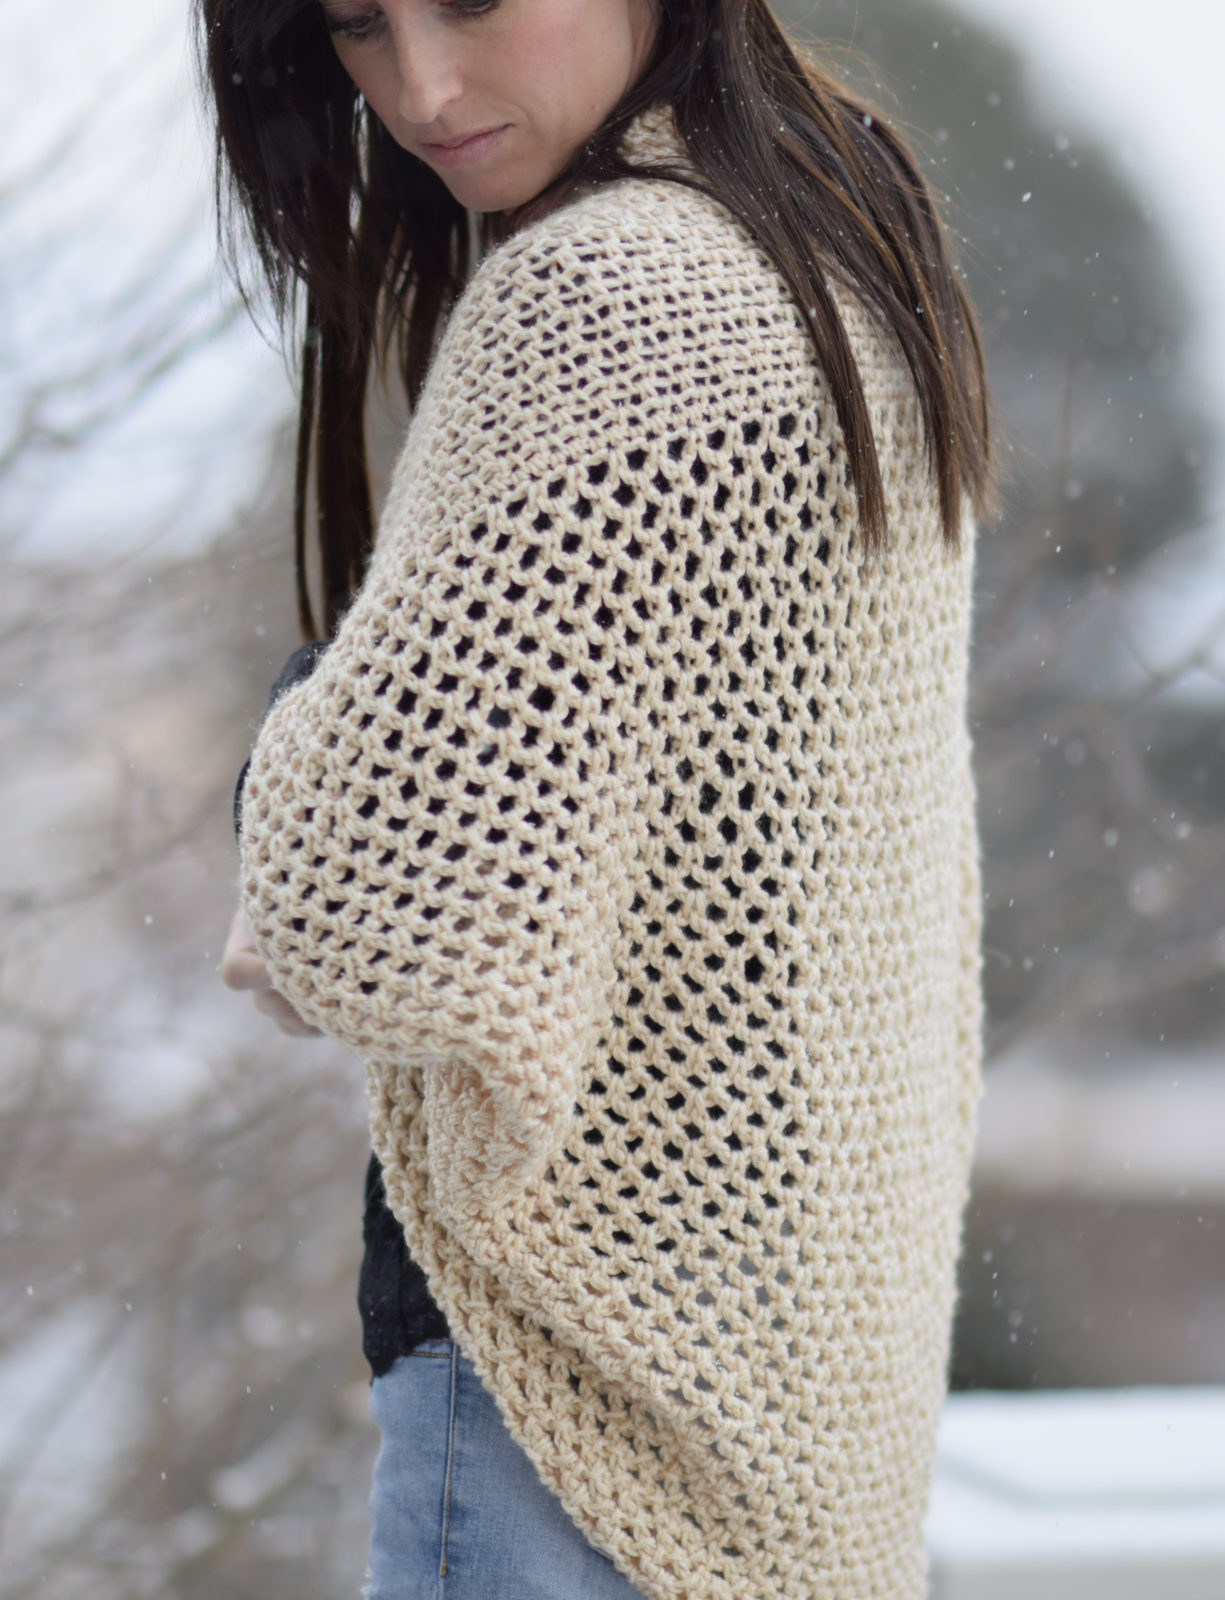 Beautiful Mod Mesh Honey Blanket Sweater – Mama In A Stitch Crochet Cardigans Of Gorgeous 40 Pics Crochet Cardigans